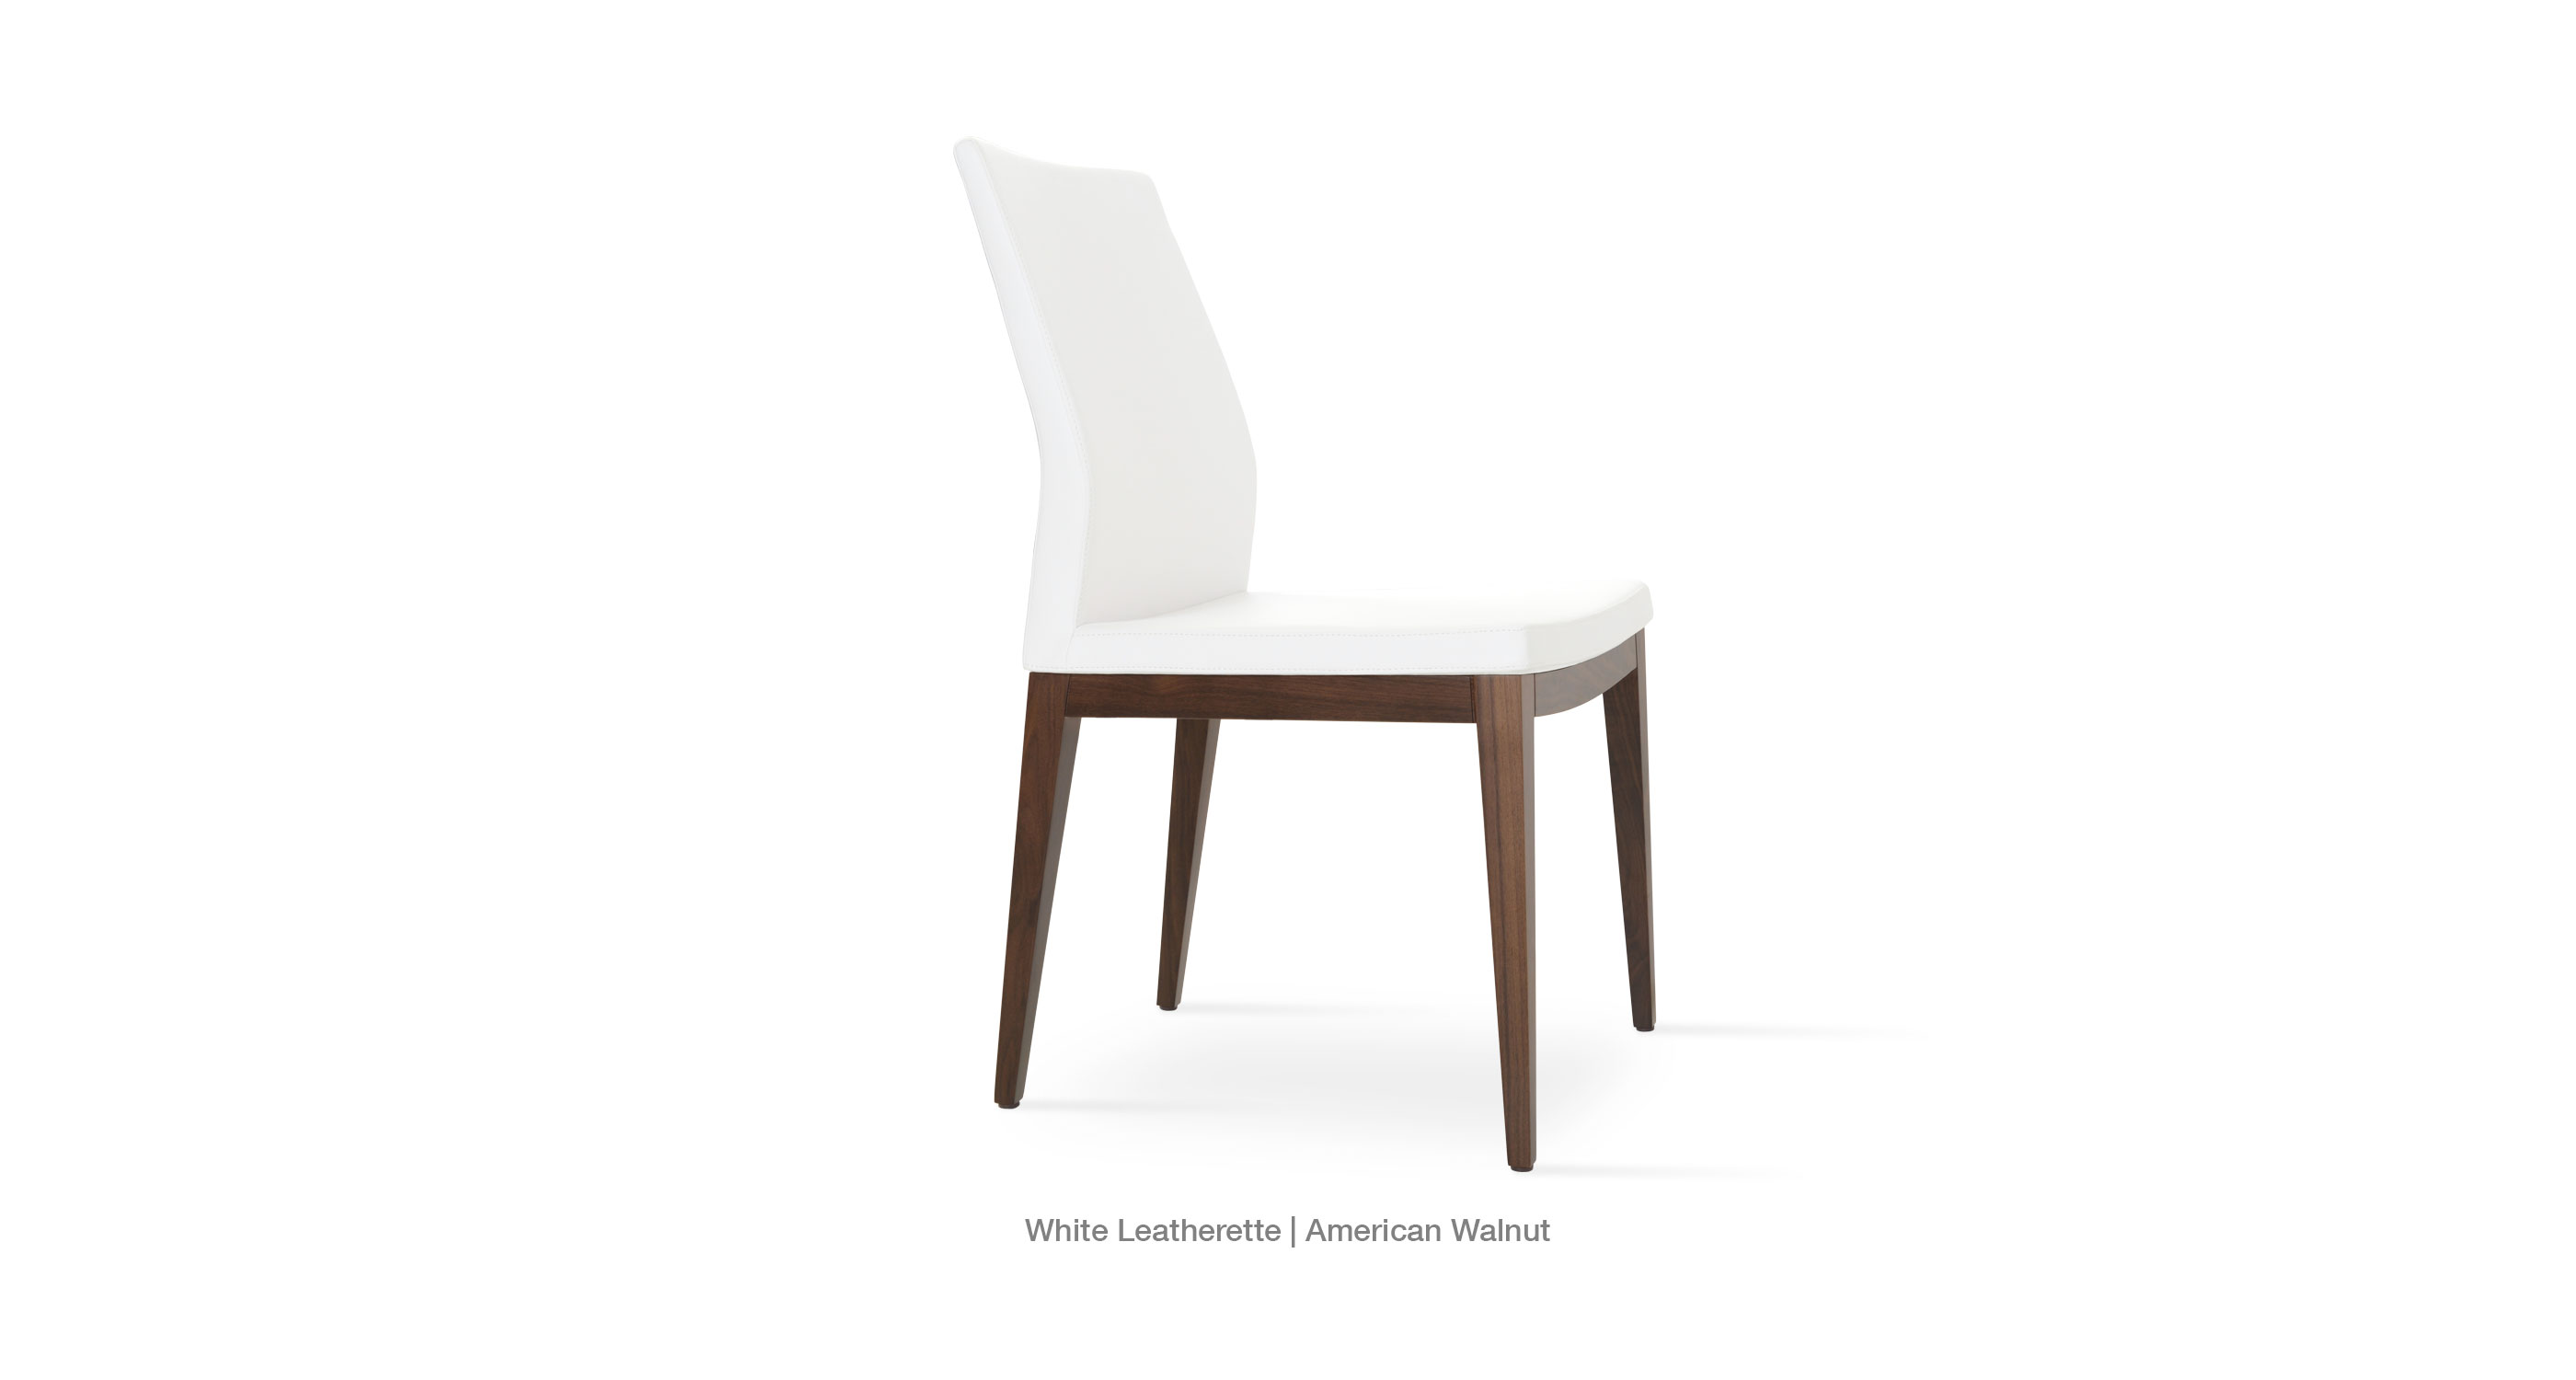 White Leatherette American Walnut